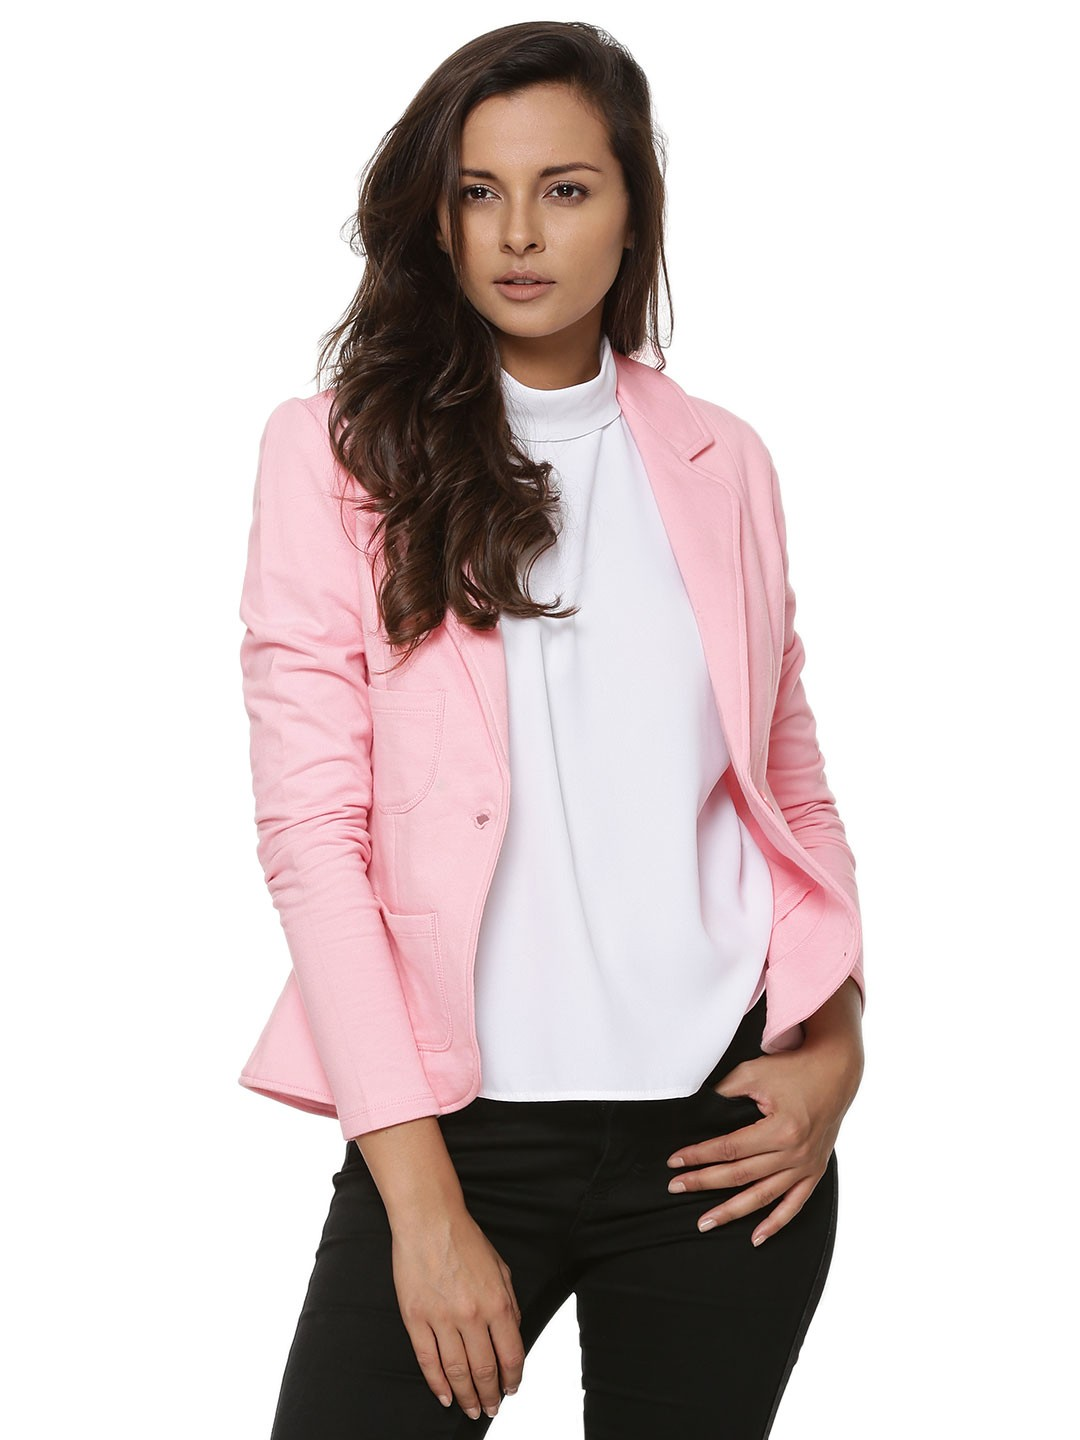 Blazers. Add a polished touch to any outfit with a blazer. Shop the smart selection of women's blazers with great styles for both casual looks and office outfits.